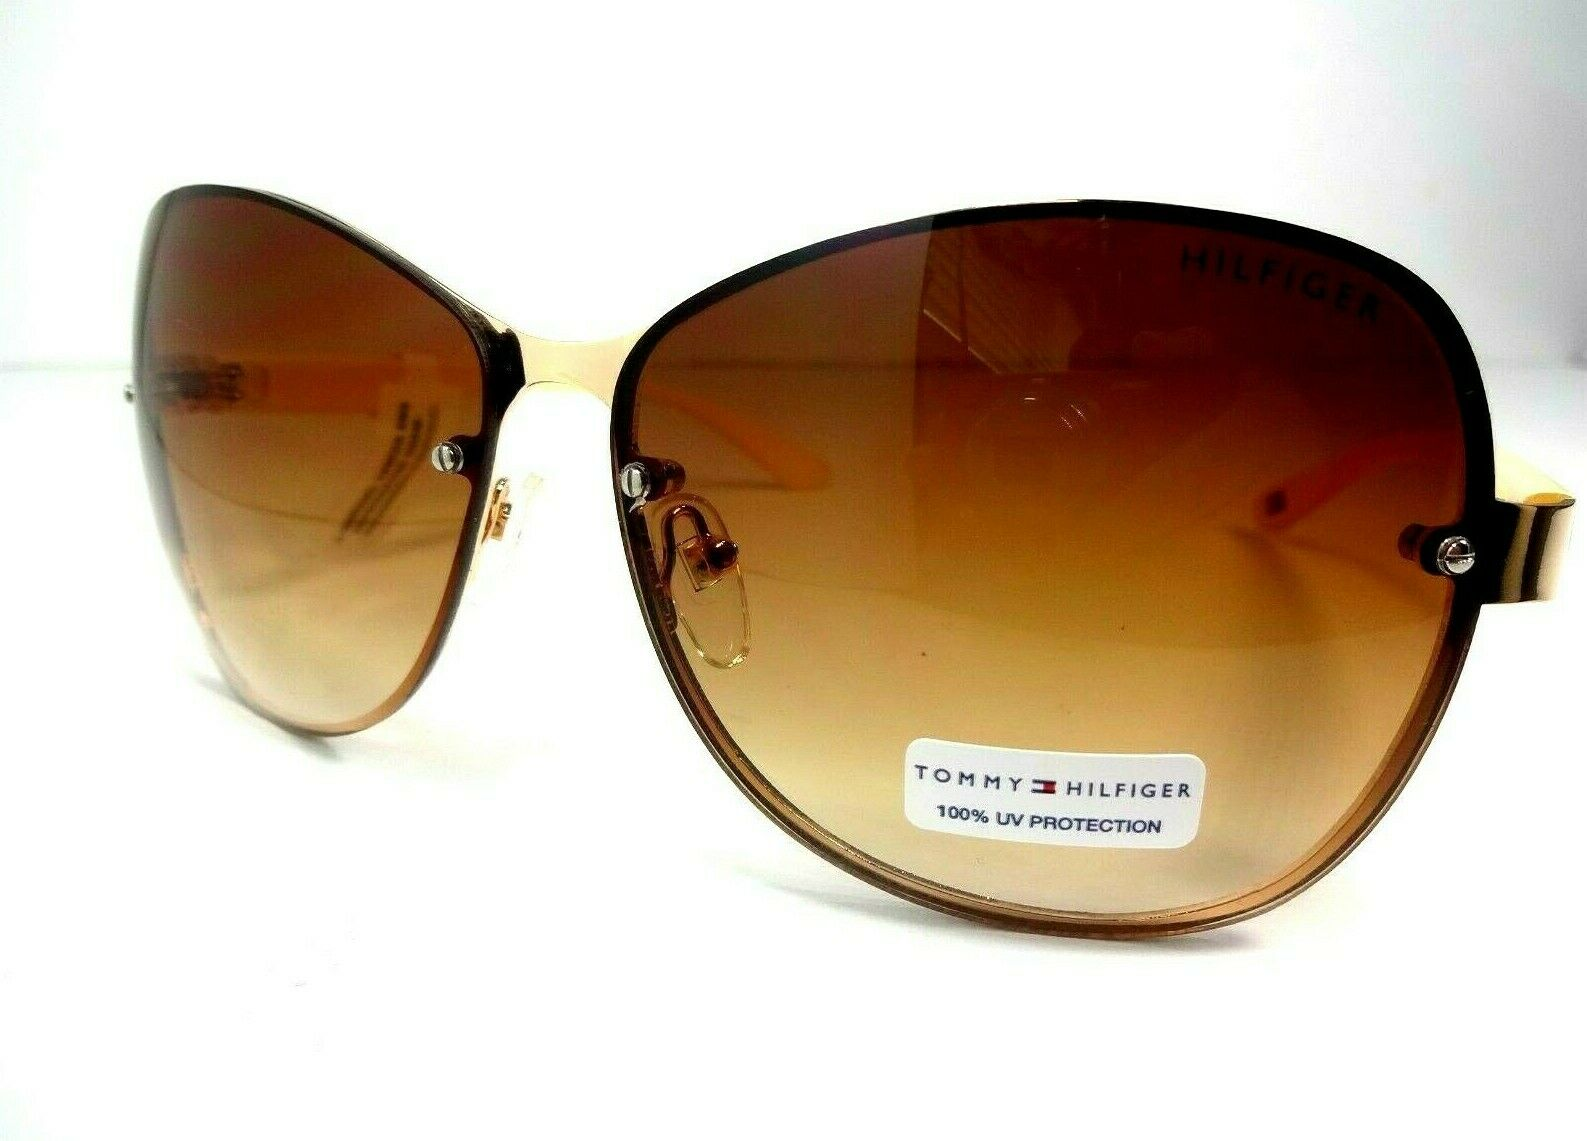 ***TOMMY HILFIGER LADIES FANCY DESIGNER SUNGLASSES, BRAND NEW AND AUTHENTIC!